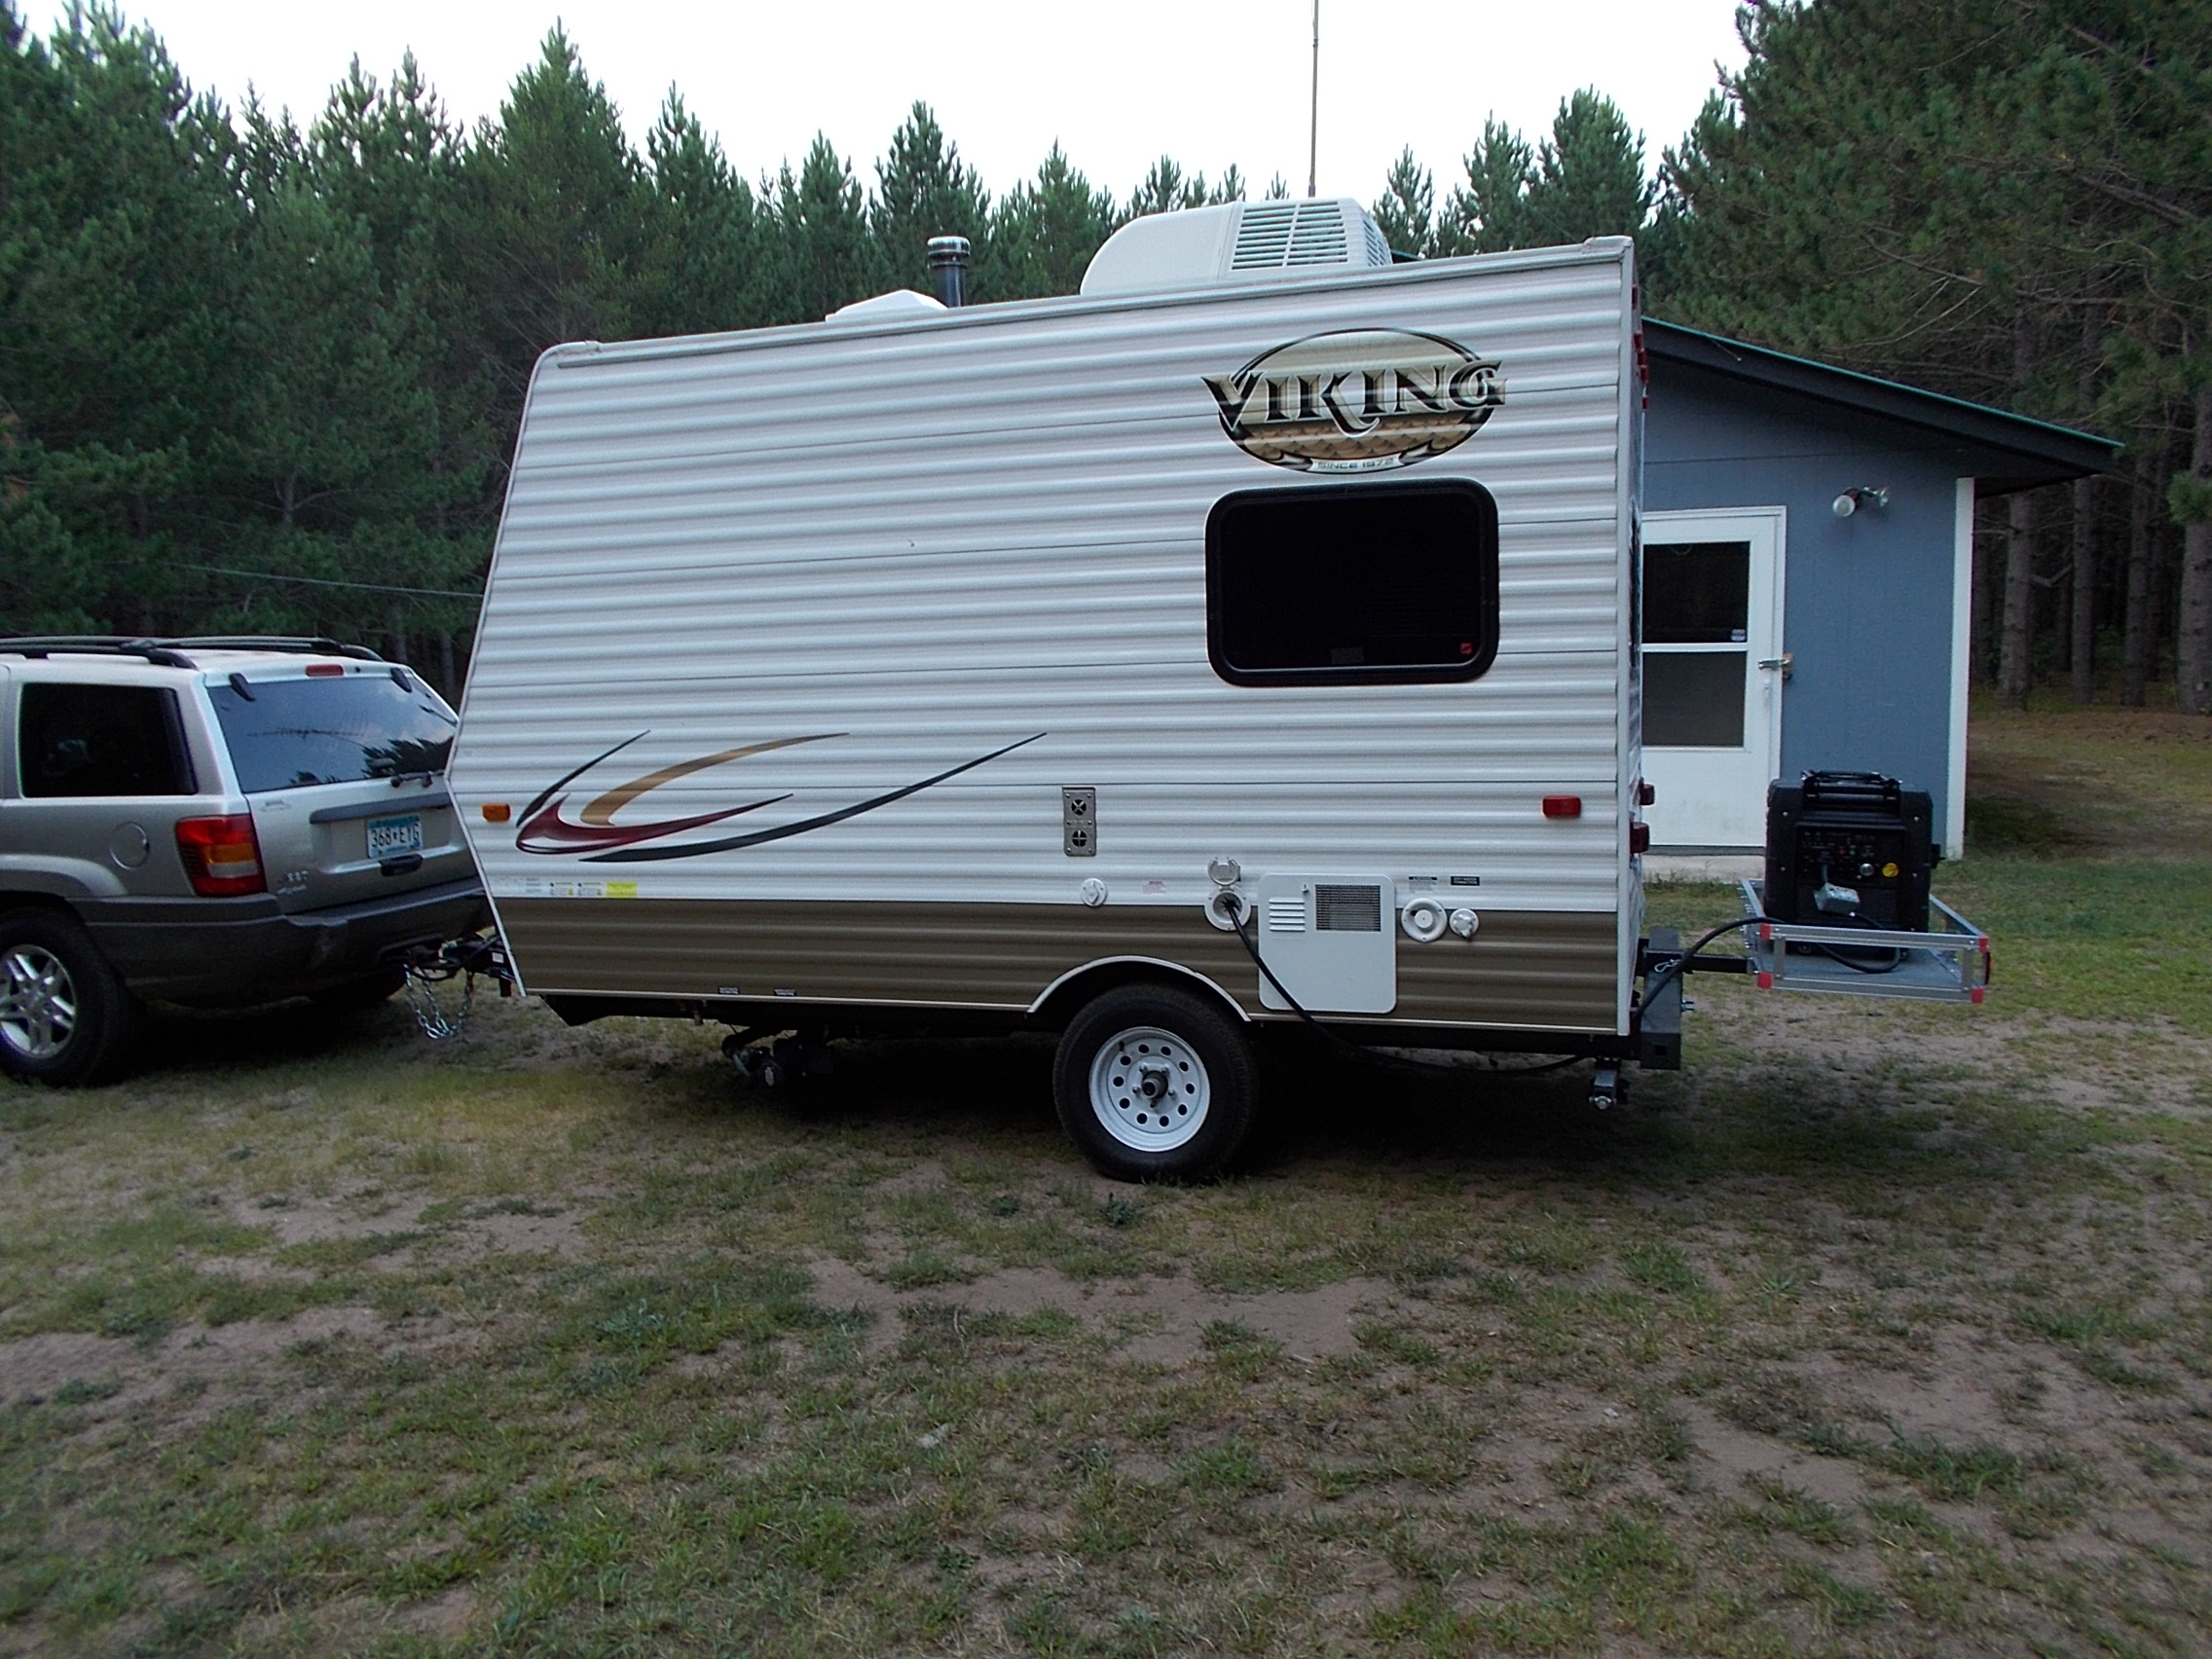 downsizing your rv to get better fuel economy you may want to